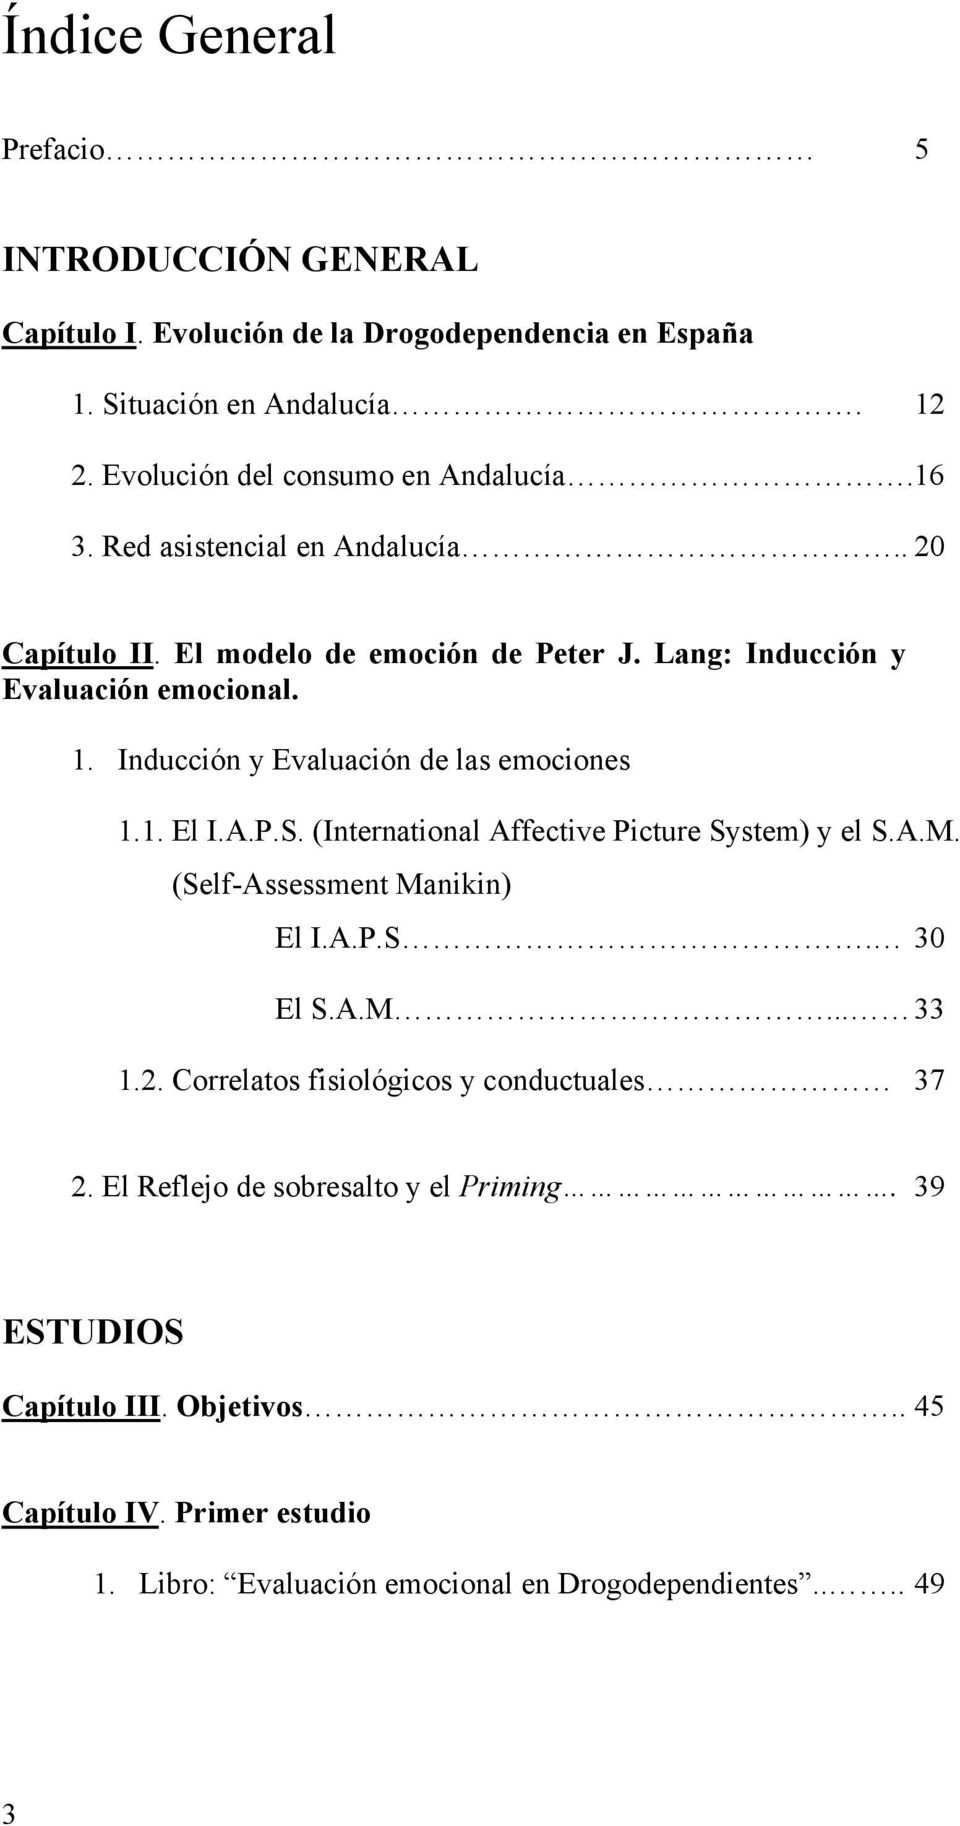 1. El I.A.P.S. (International Affective Picture System) y el S.A.M. (Self-Assessment Manikin) El I.A.P.S. 30 El S.A.M... 33 1.2.